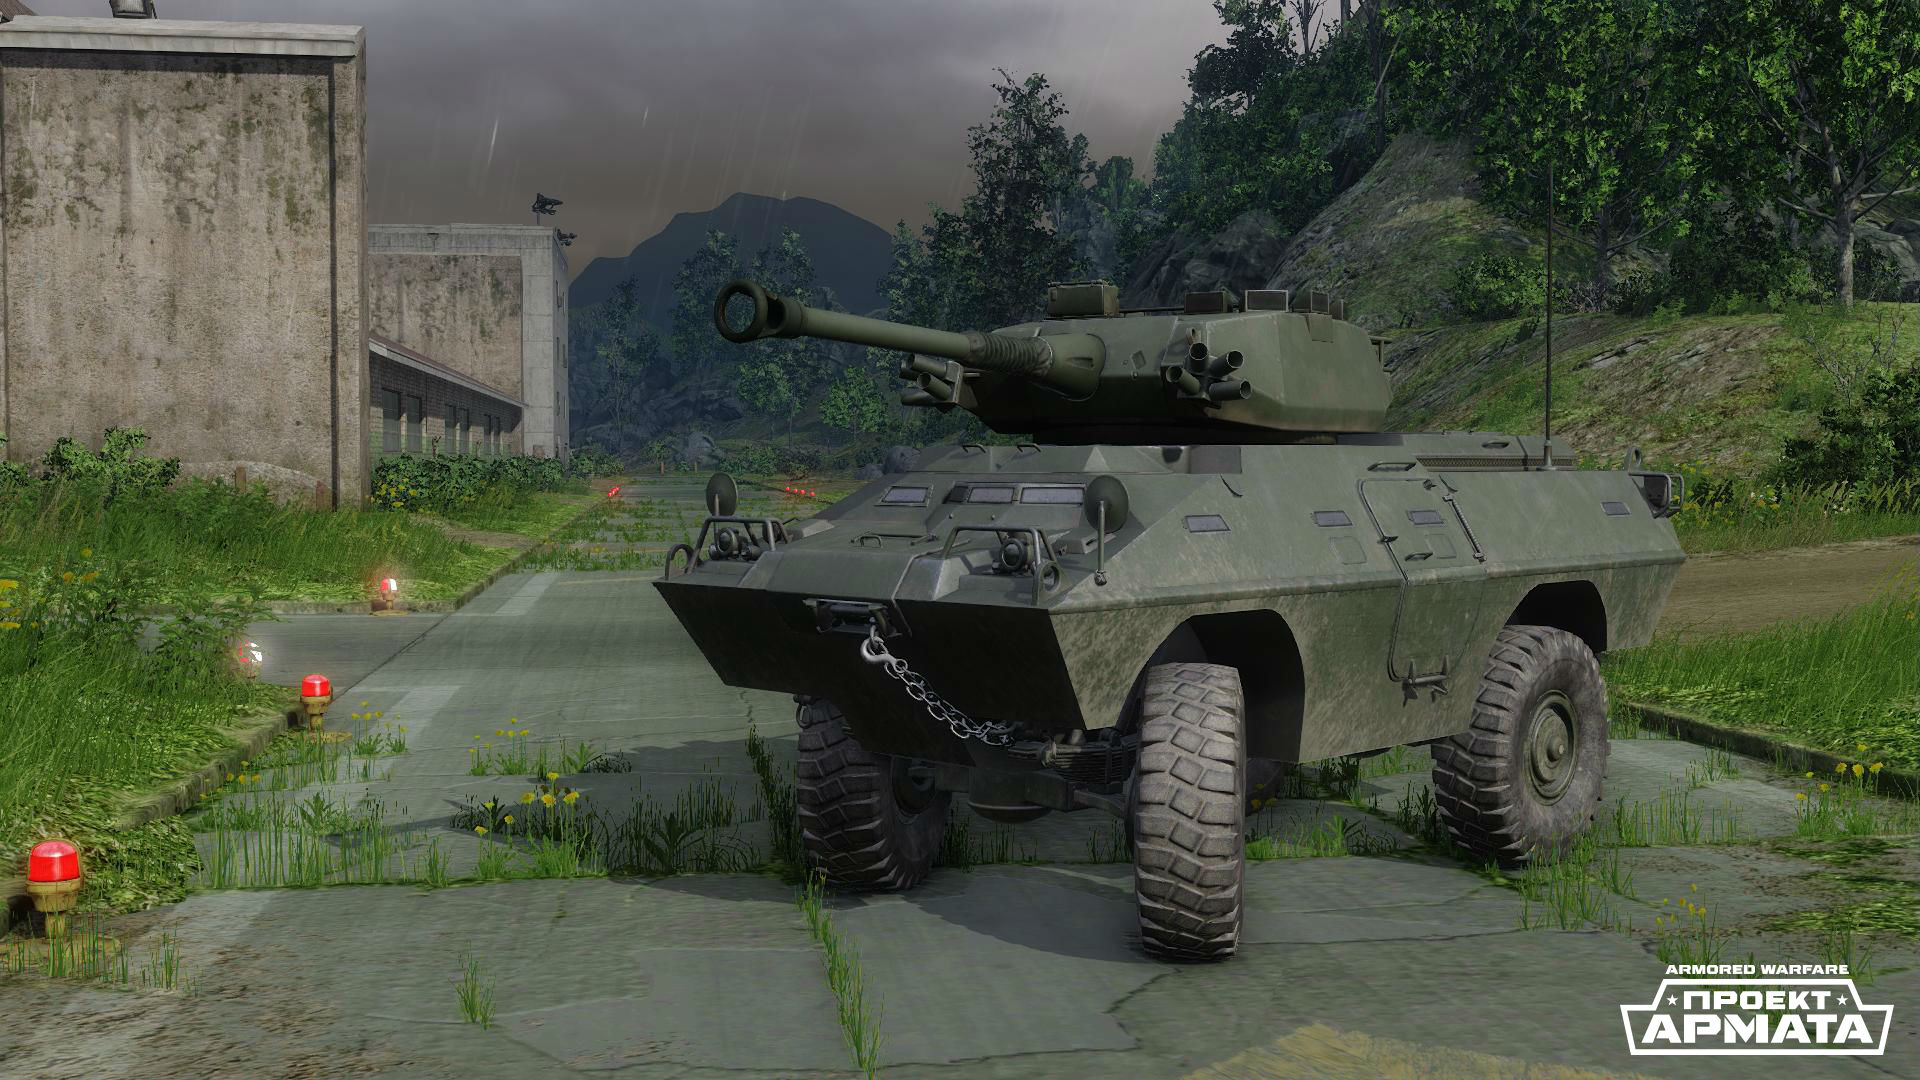 istrebiteli-tankov-armored-warfare-3